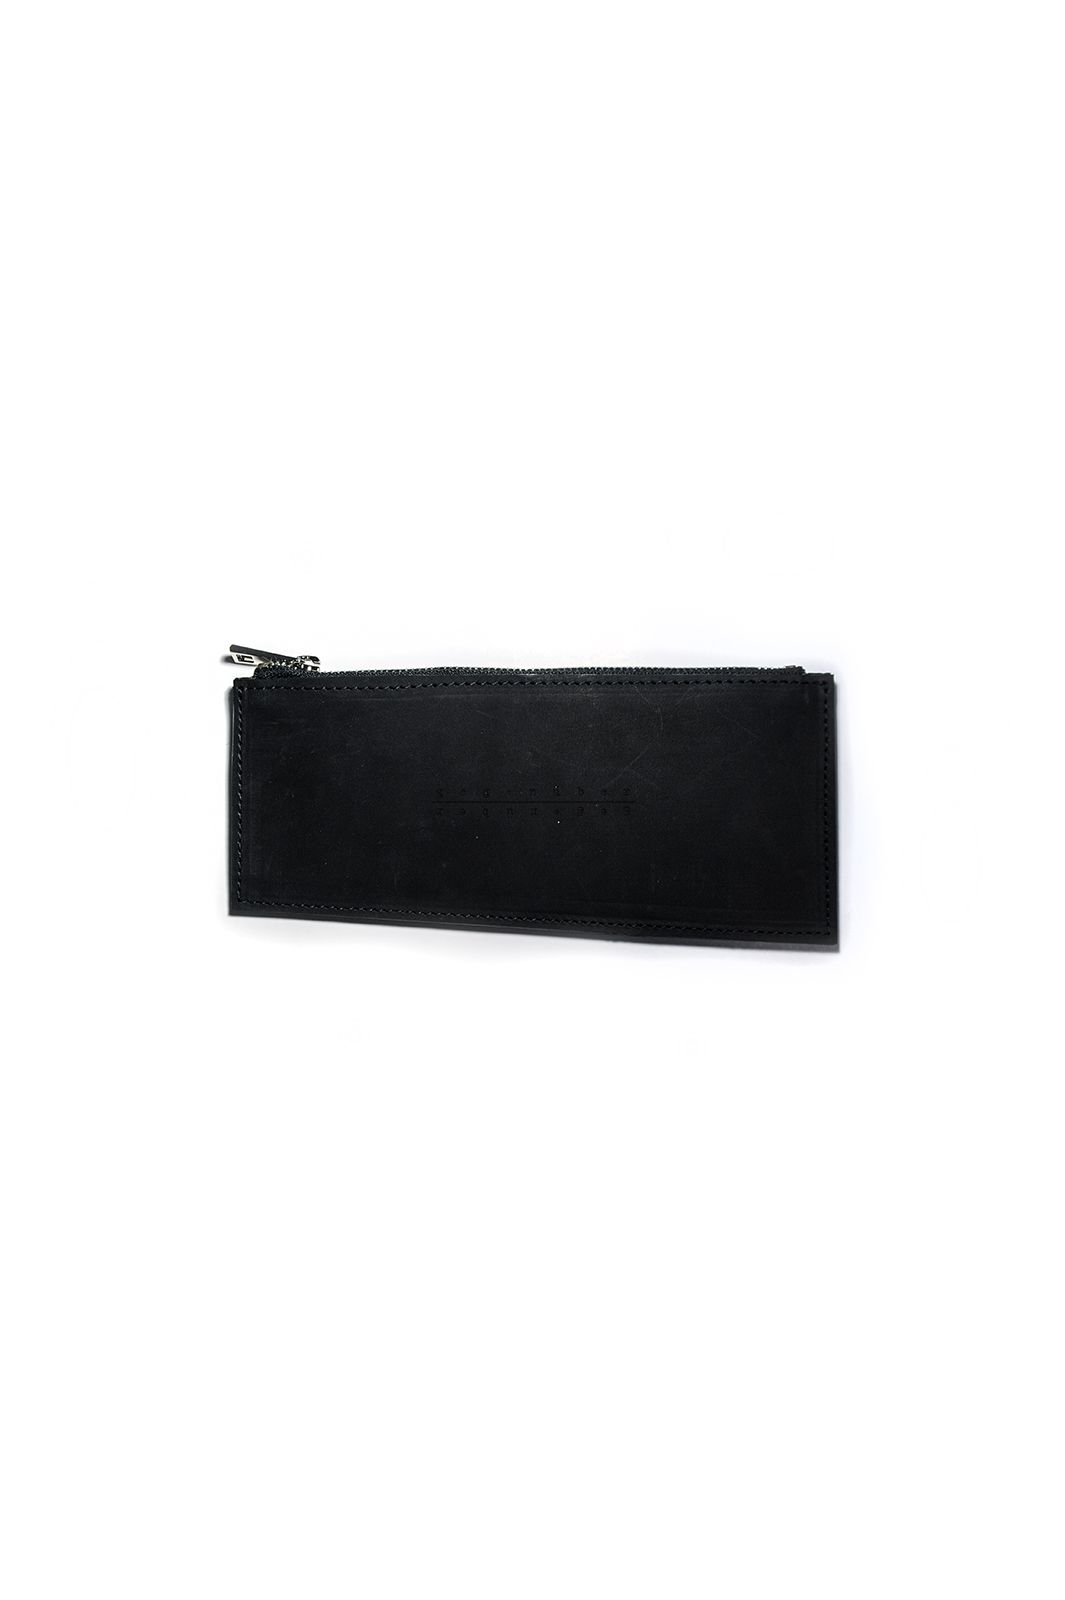 gegenüber Linie diagonal lined sub-wallet in cow leather with YKK zipper color : dull black material : 100% cow leather submaterial : YKK zipper lining : chamude measures : H 9 – 8cm  W 20cm